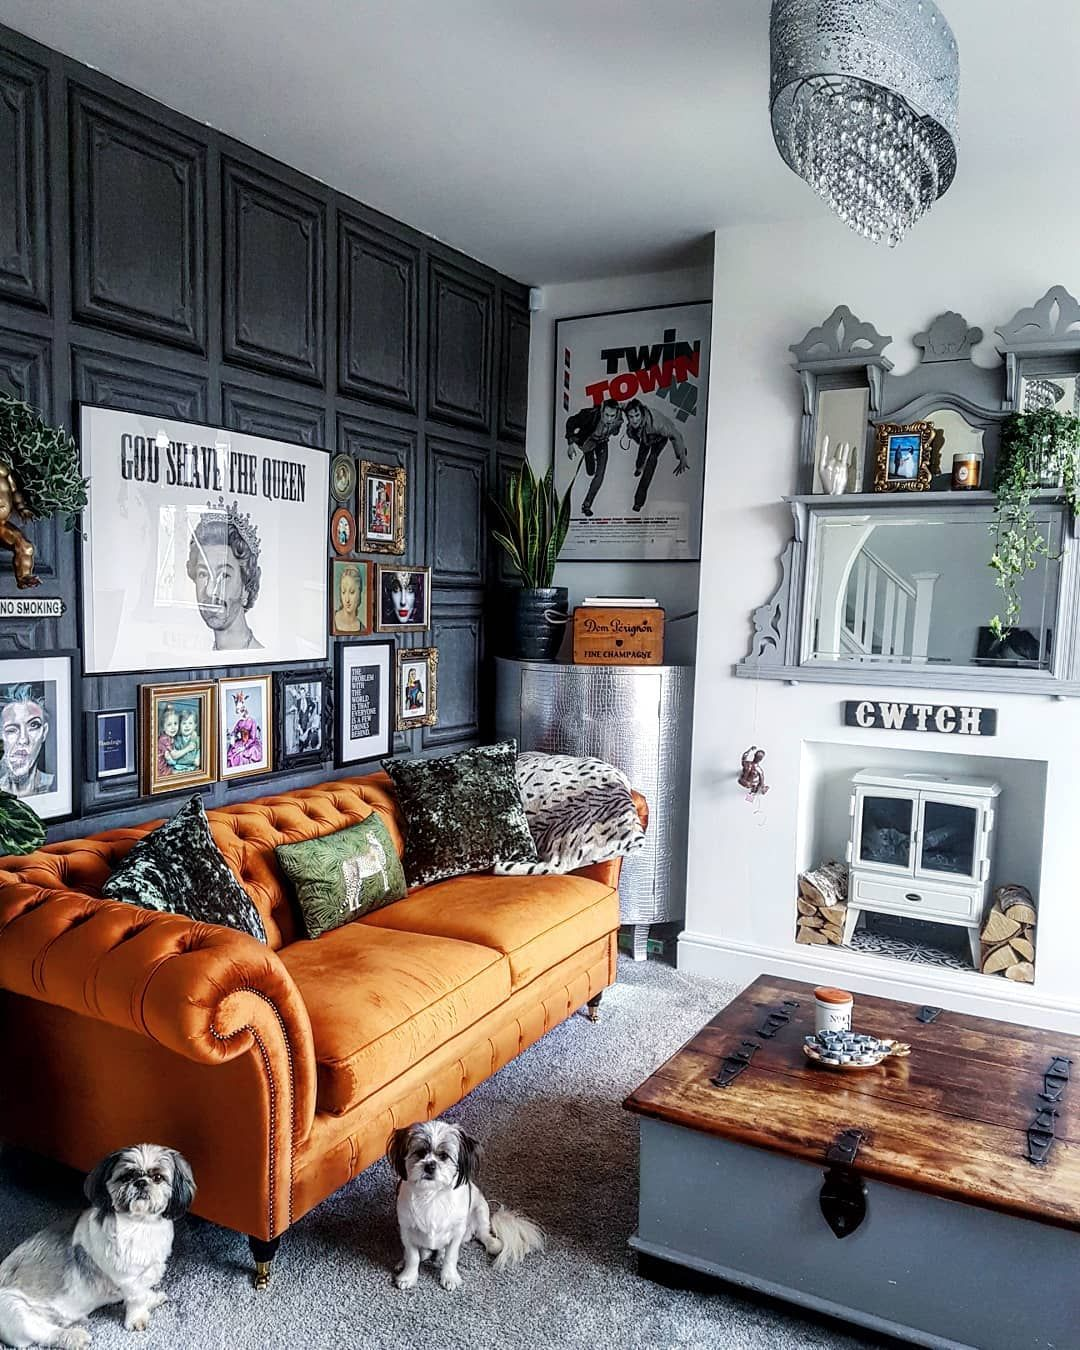 What An Amazing Living Room Love The Burnt Orange Sofa Against The Dark Panelled Wall And Gallery Living Room Orange Living Room Designs Home Interior Design